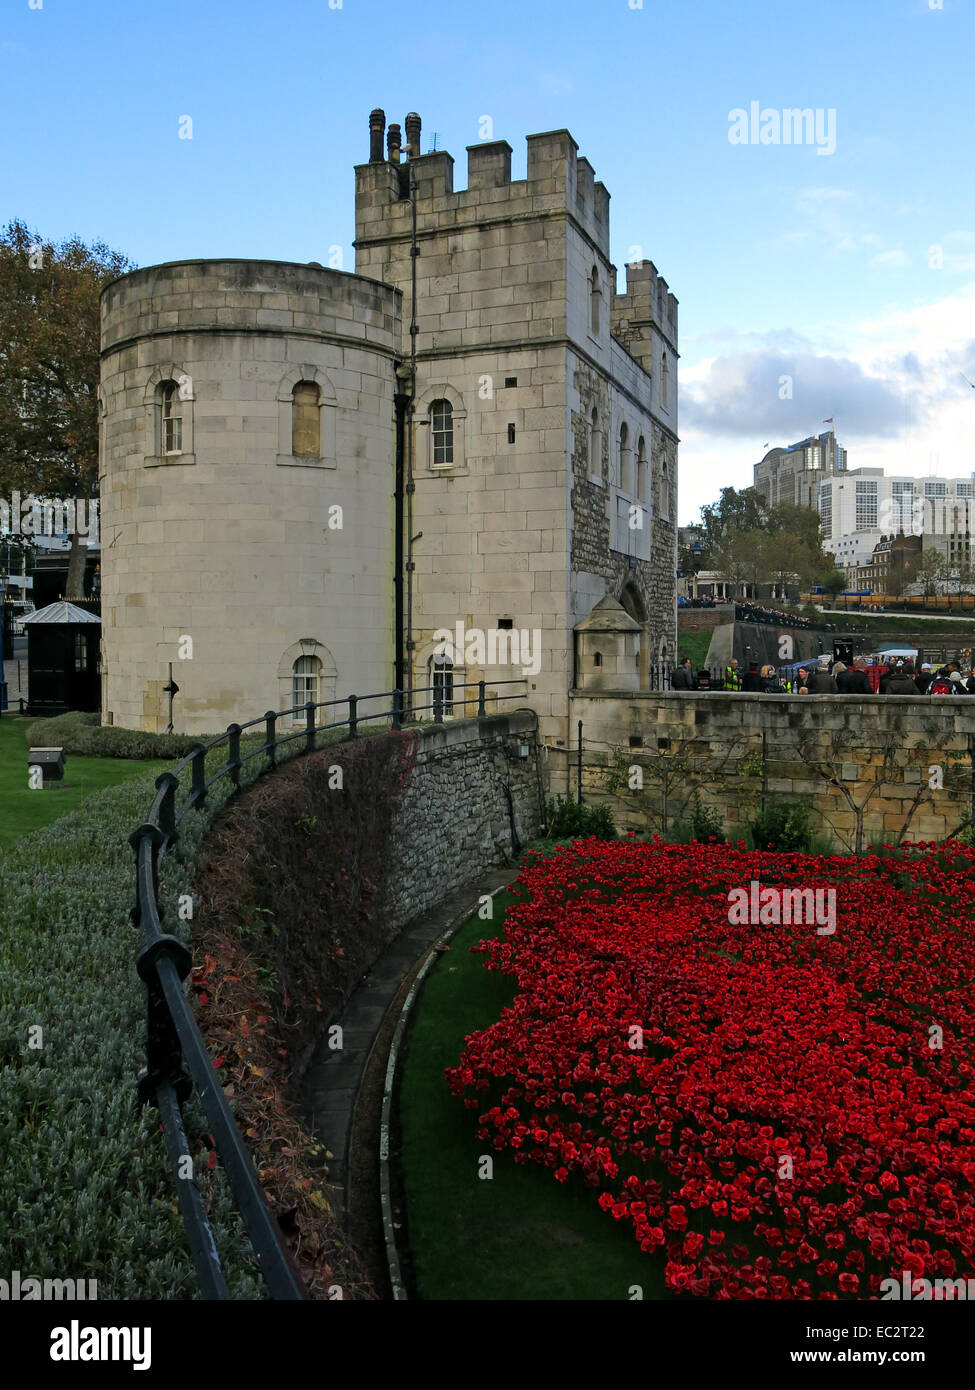 Blood Swept Lands and Seas of Red poppies, at west side of The Tower of London, England UK - Stock Image